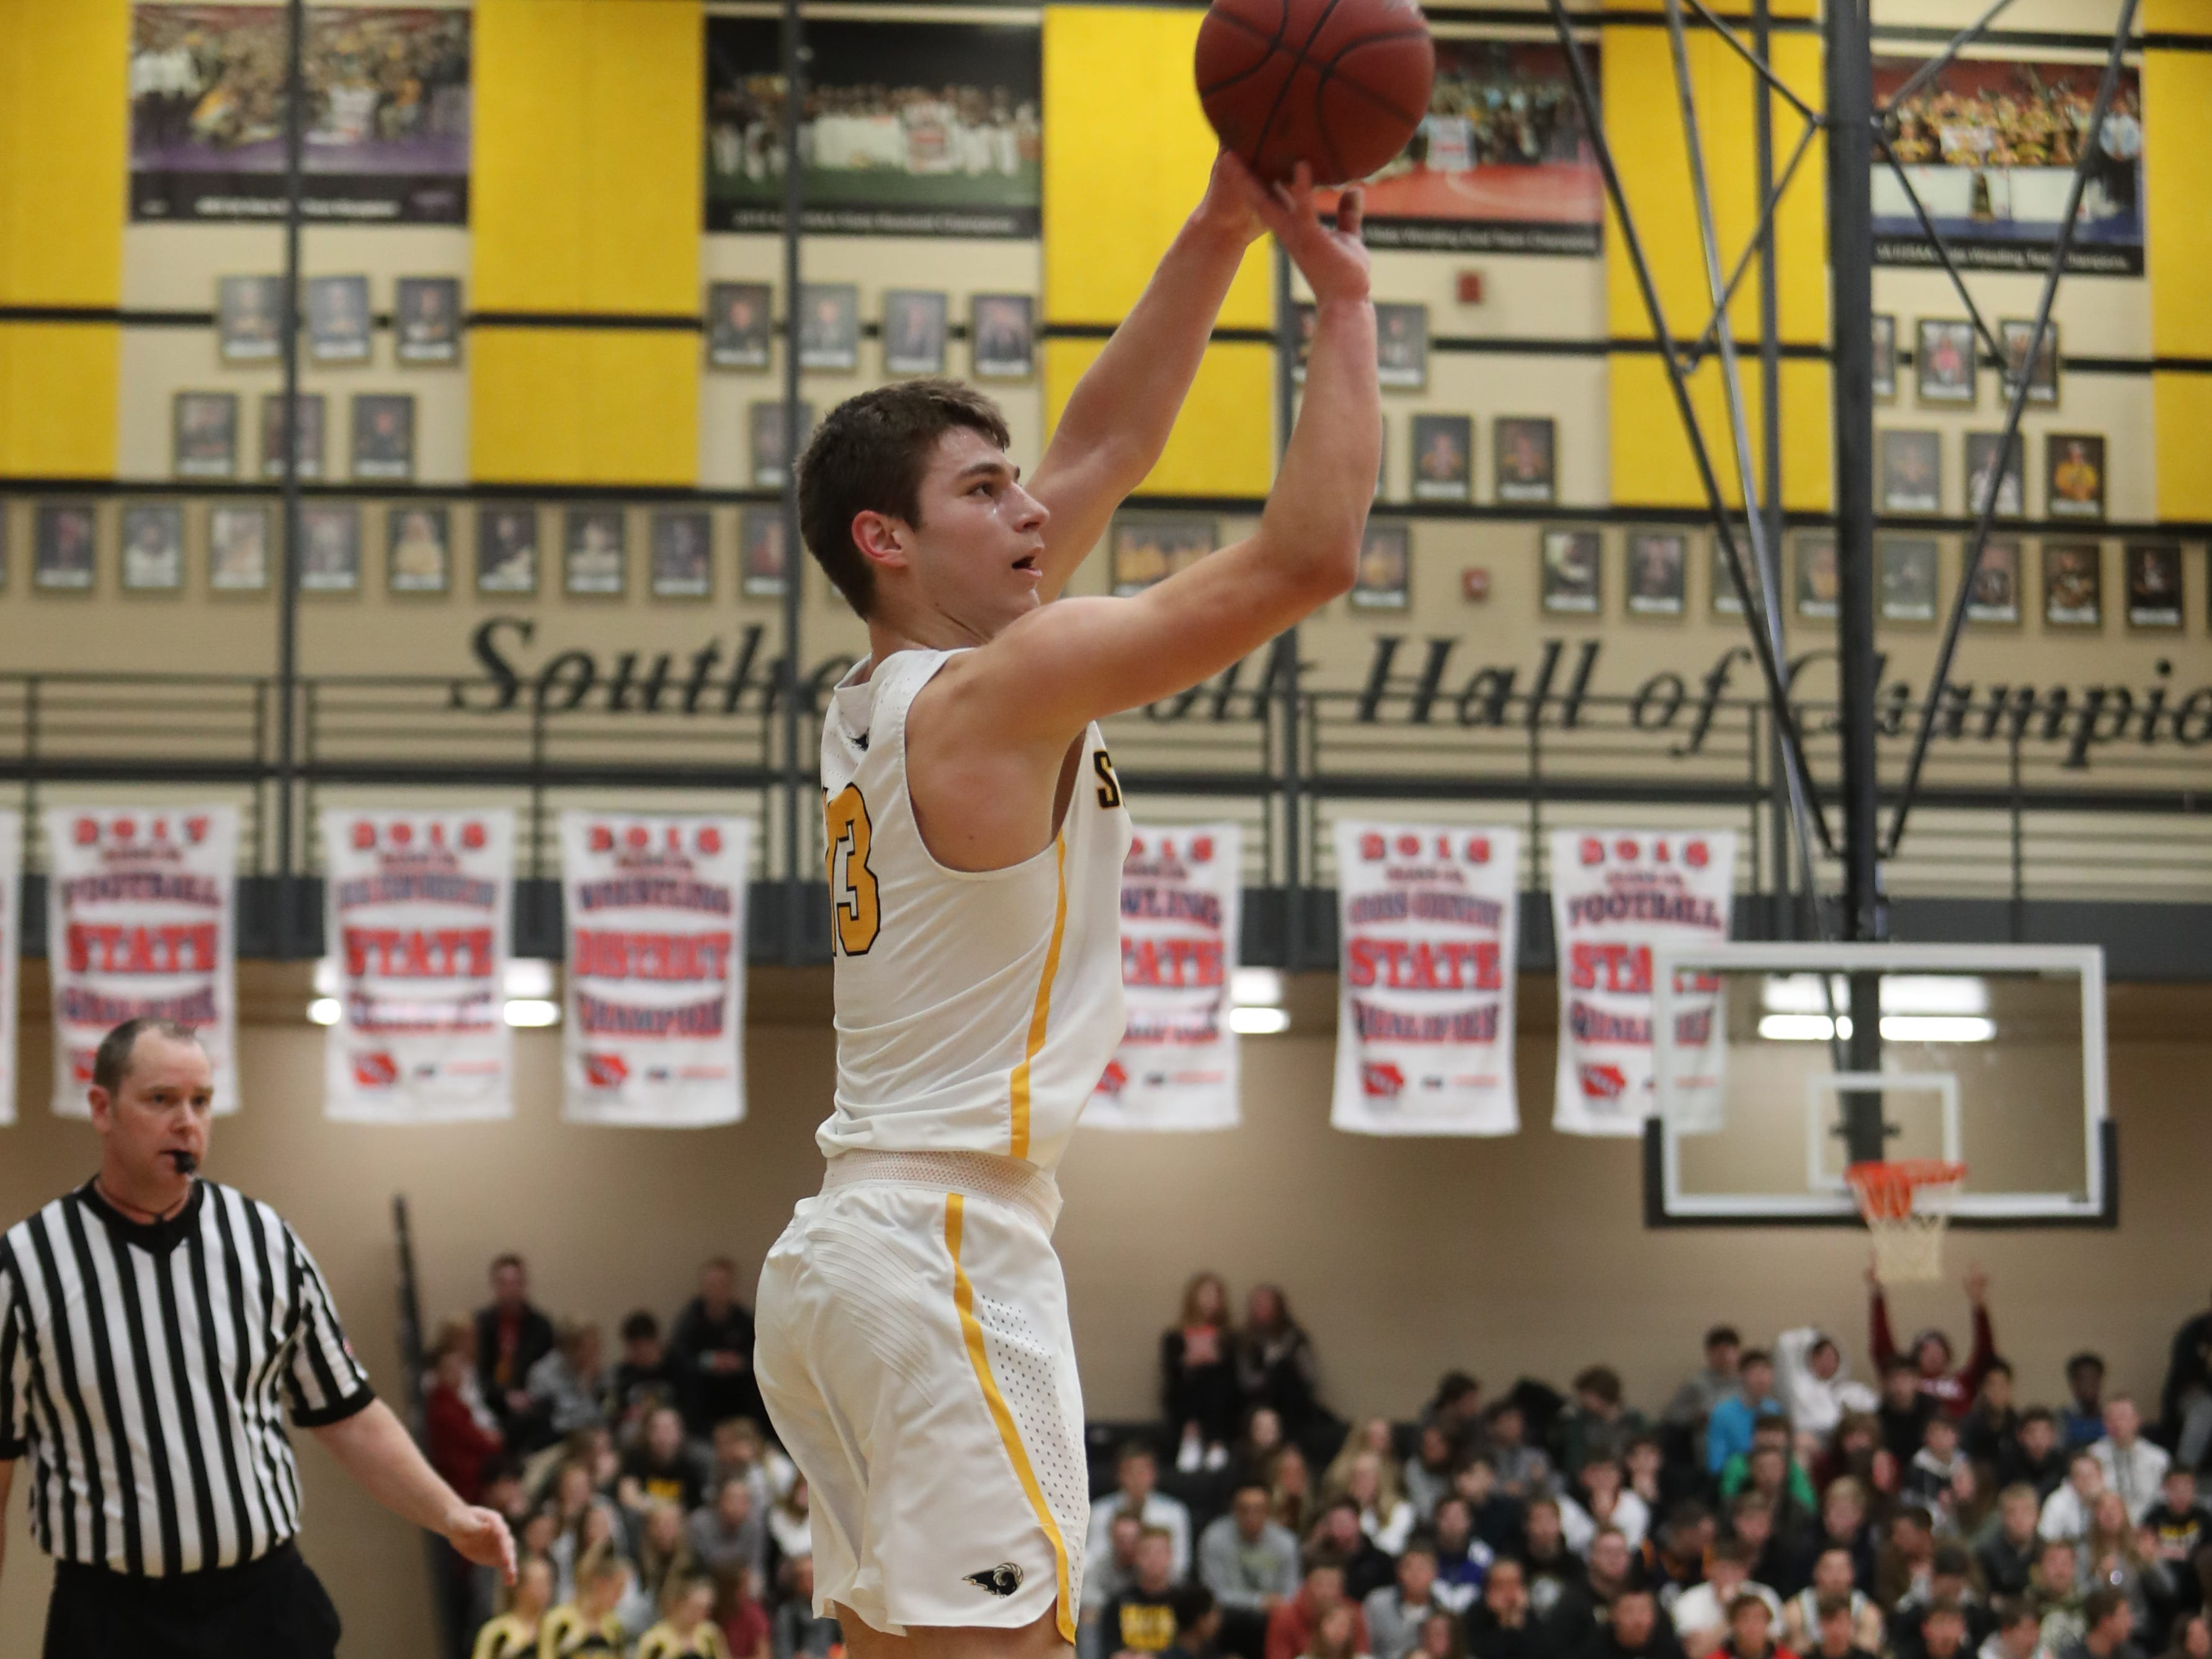 Southeast Polk Rams' Dominic Caggiano (13) shoots against the Waukee Warriors during a game on Feb. 1, 2019 at Southeast Polk High School.  the Register